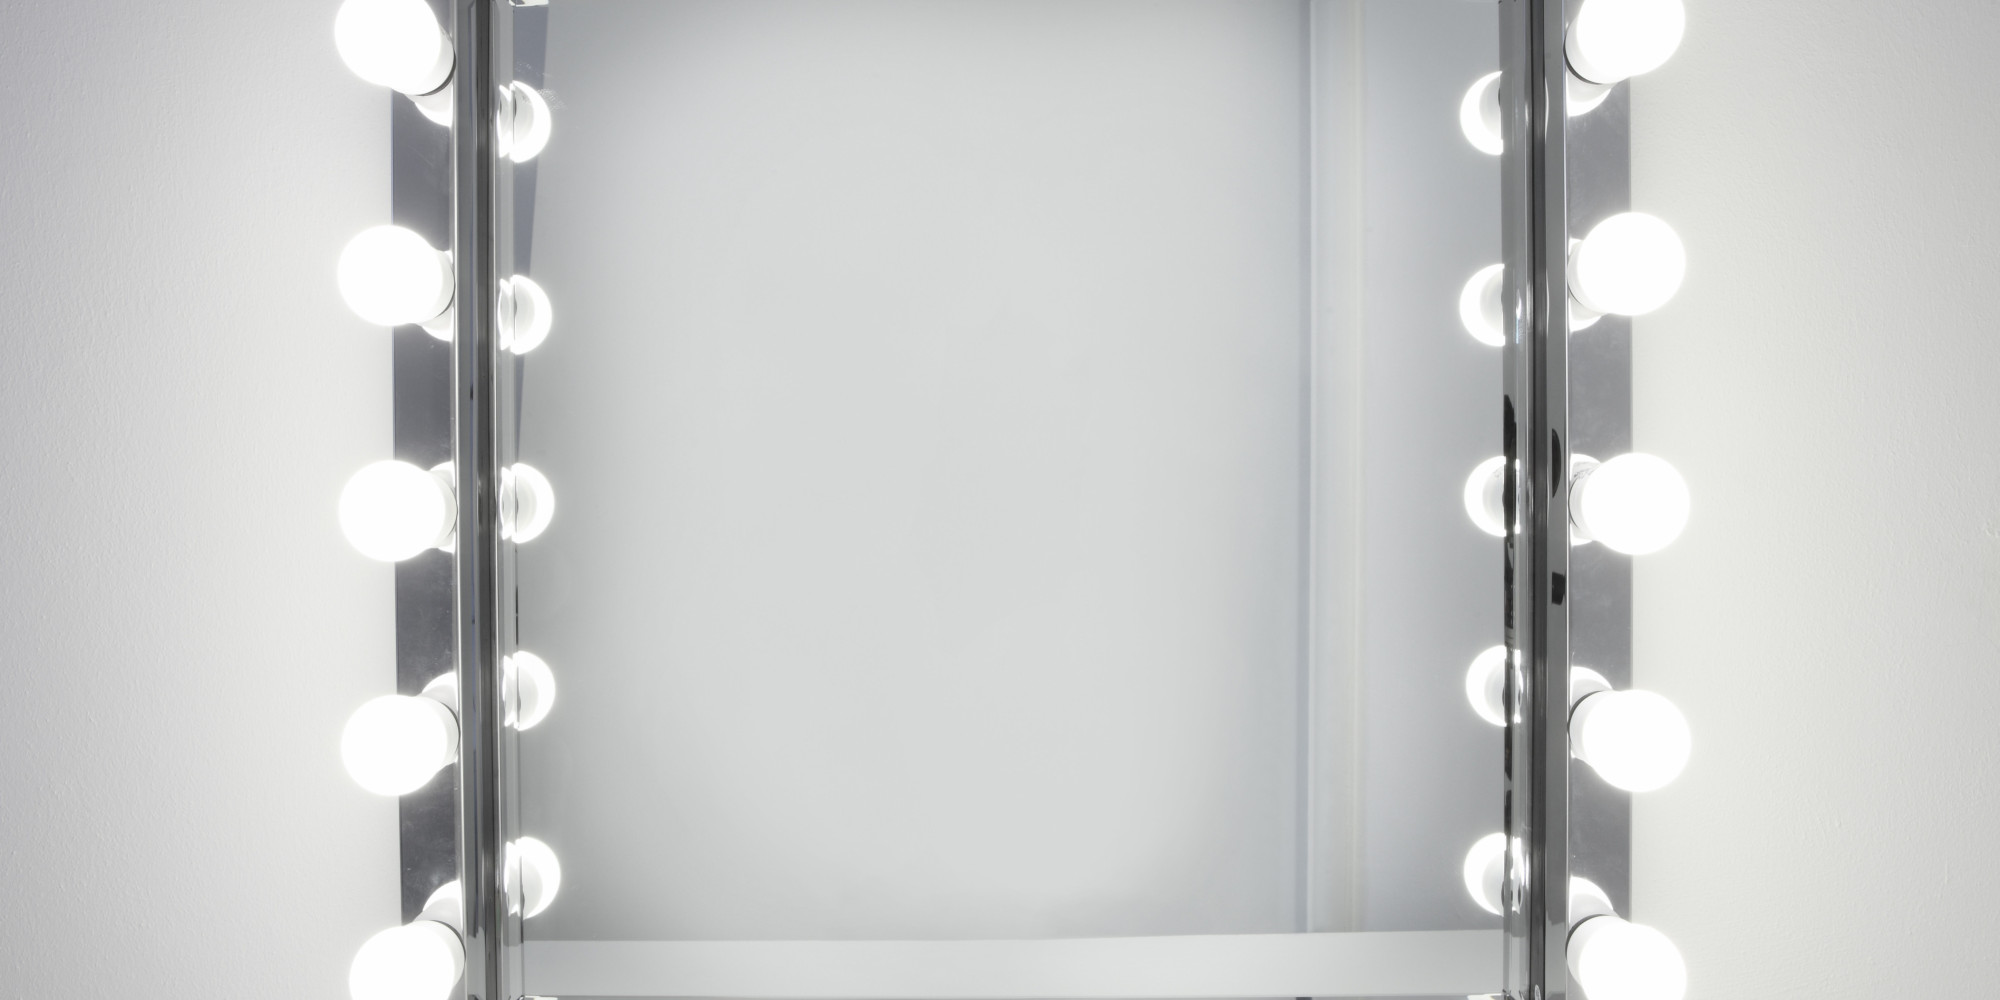 give your mirrors a streak free shine using only shaving cream and give your mirrors a streak free shine using only shaving cream and a towel huffpost